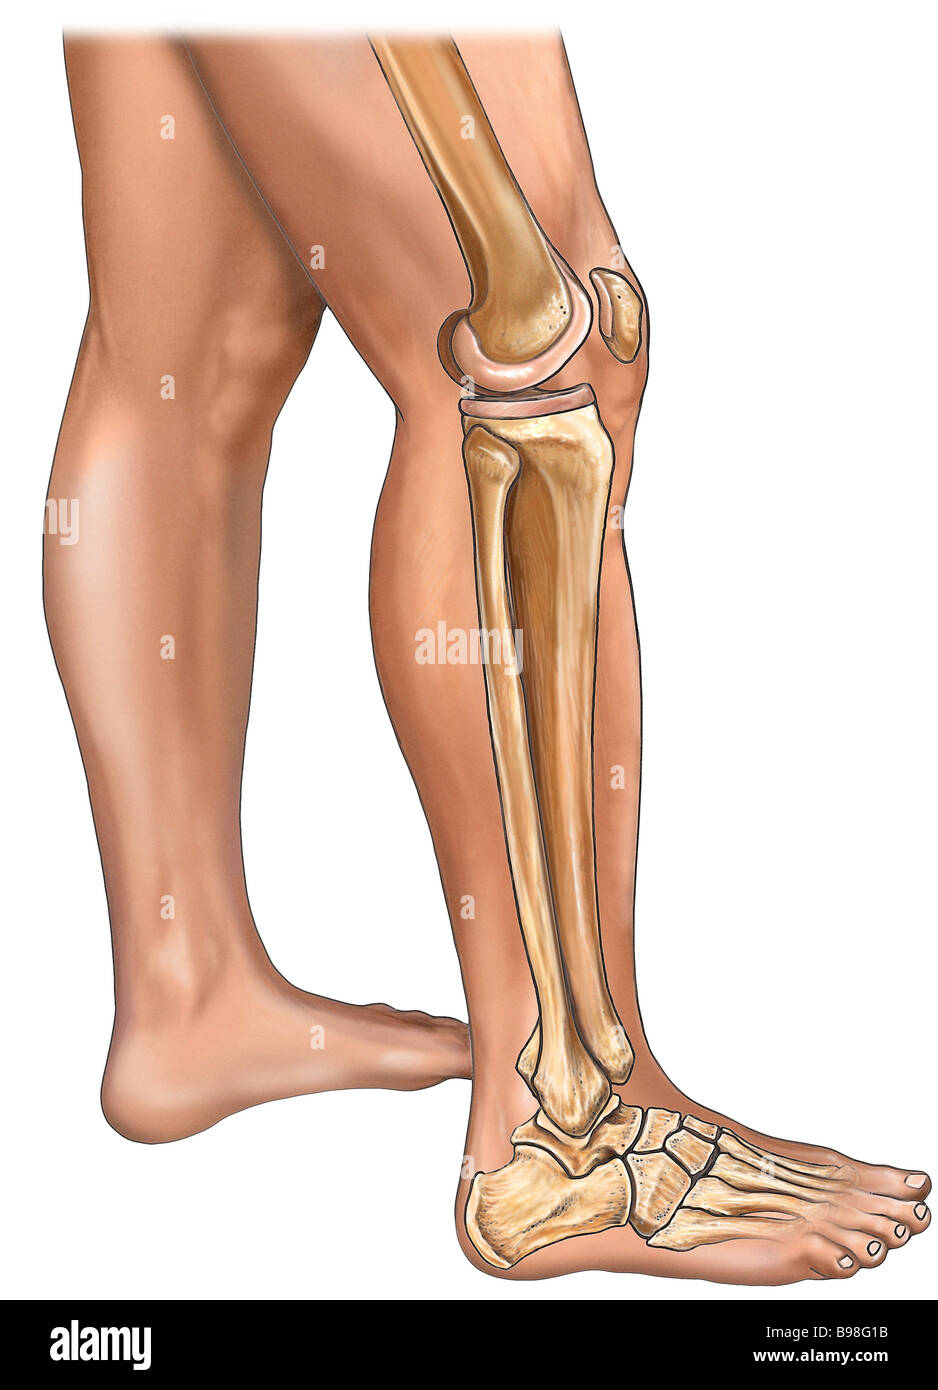 Bones Of The Leg Knee And Foot With Skin Lateral View Stock Photo